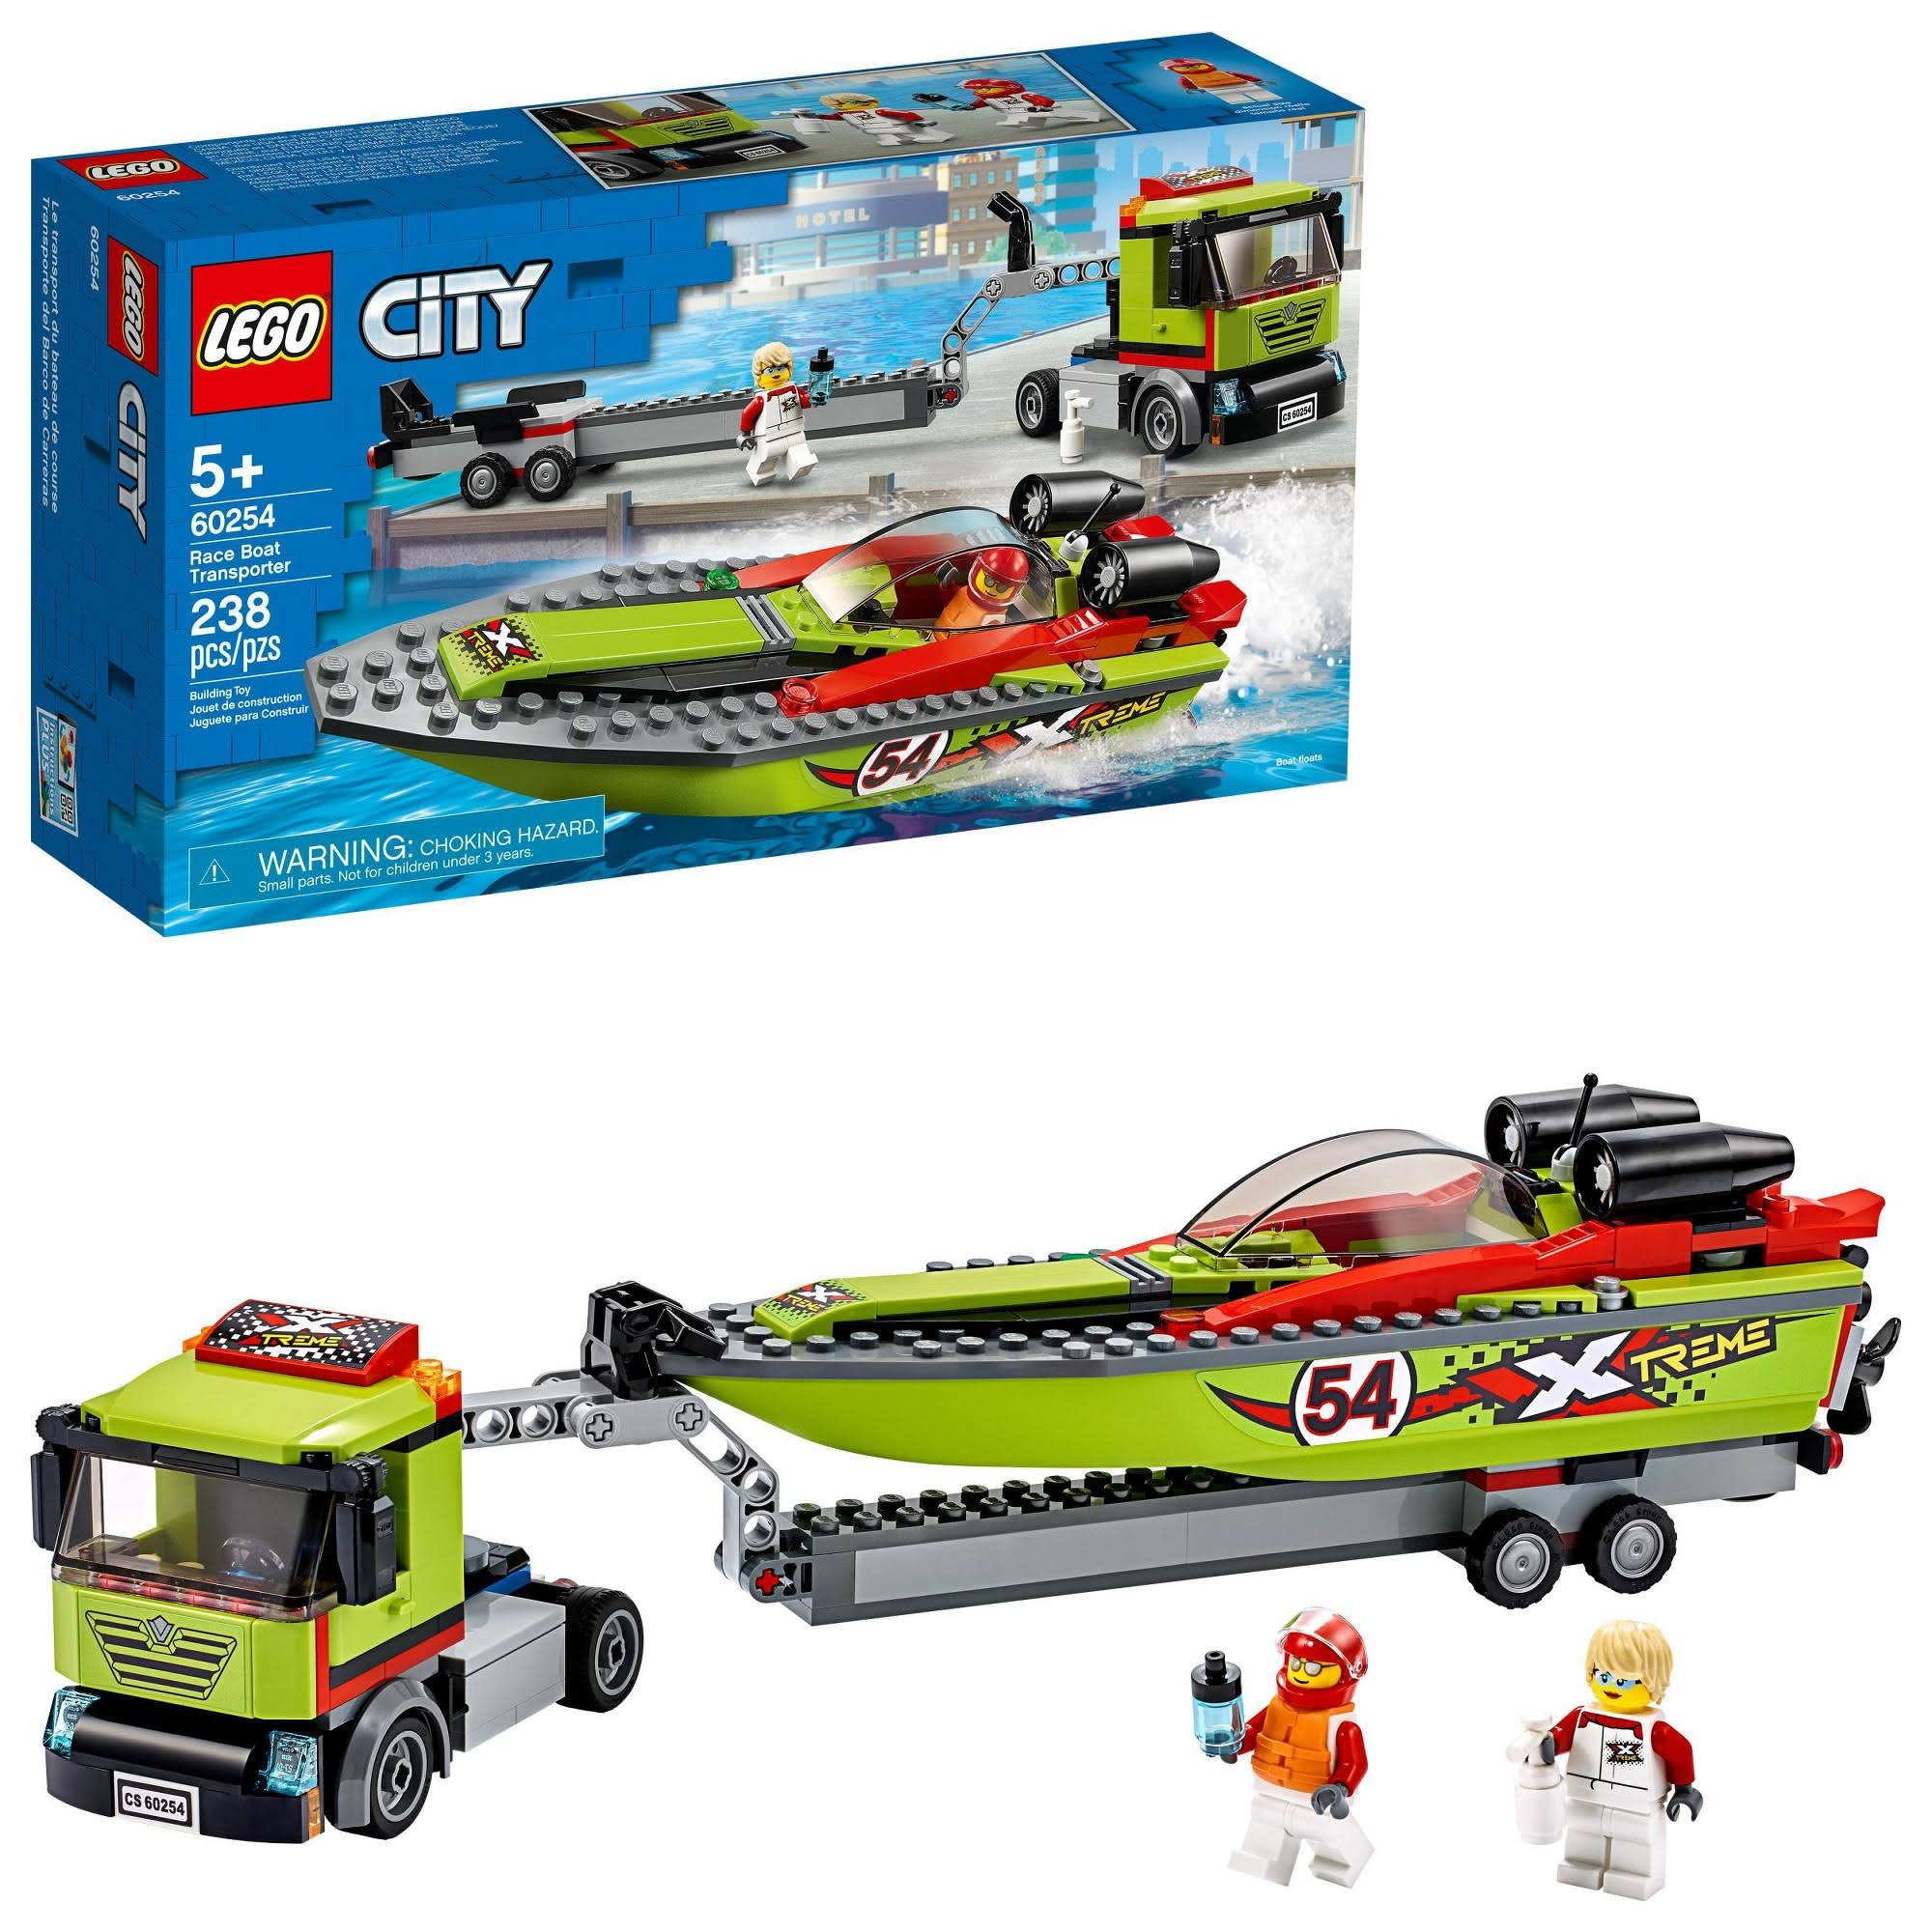 Lego City - Race Boat Transporter 60254